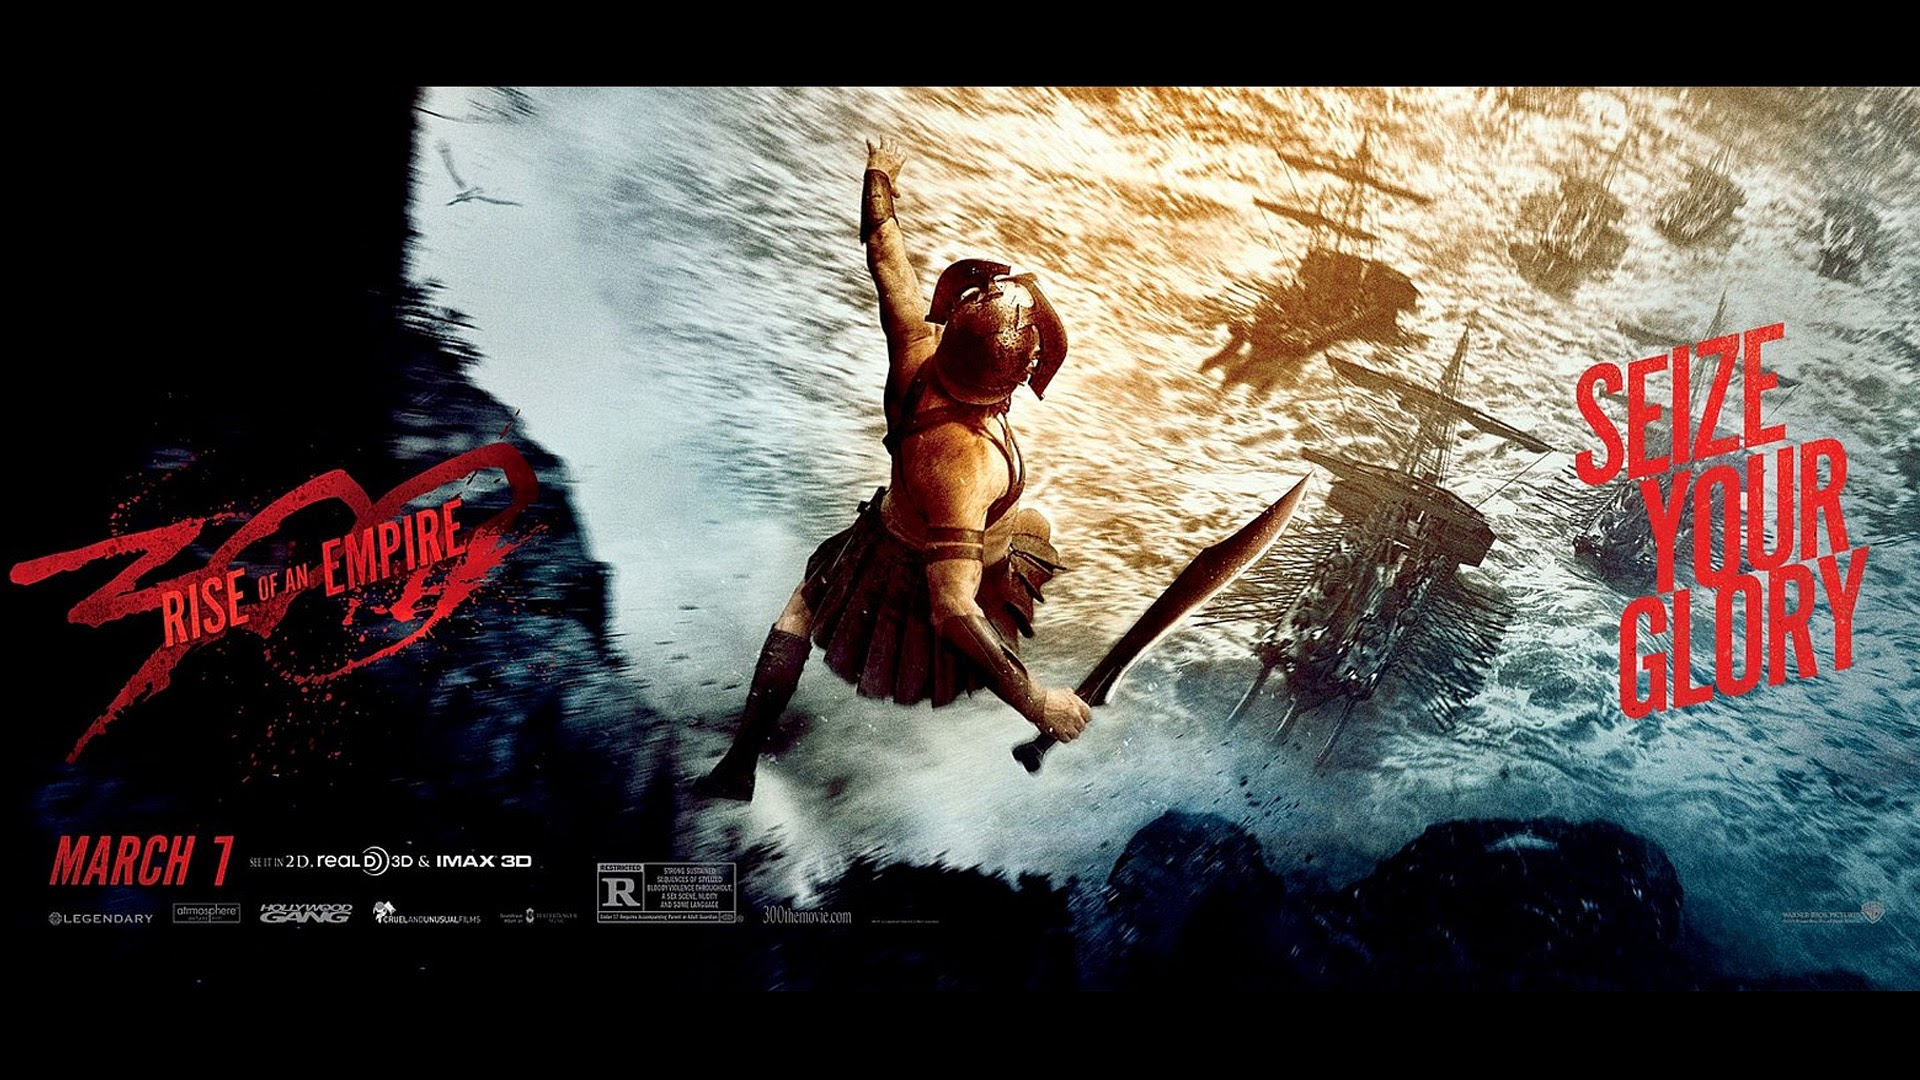 300 rise of an empire poster 2014 movie hd wallpaper 1920x1080 4h.